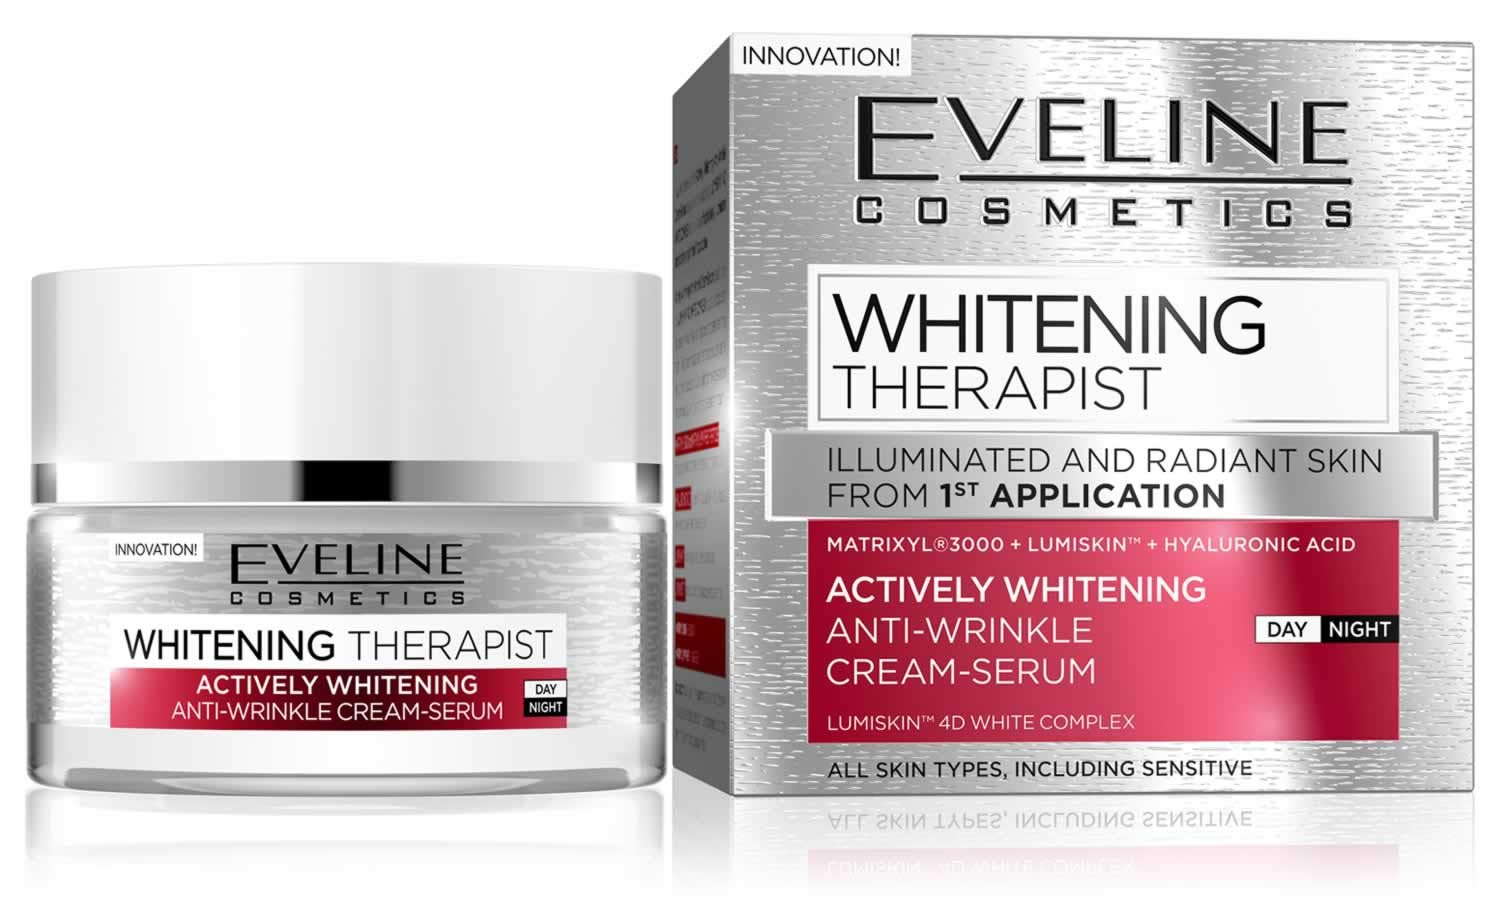 Whitening Therapist Actively Whitening Anti-Wrinkle Day and Night Cream